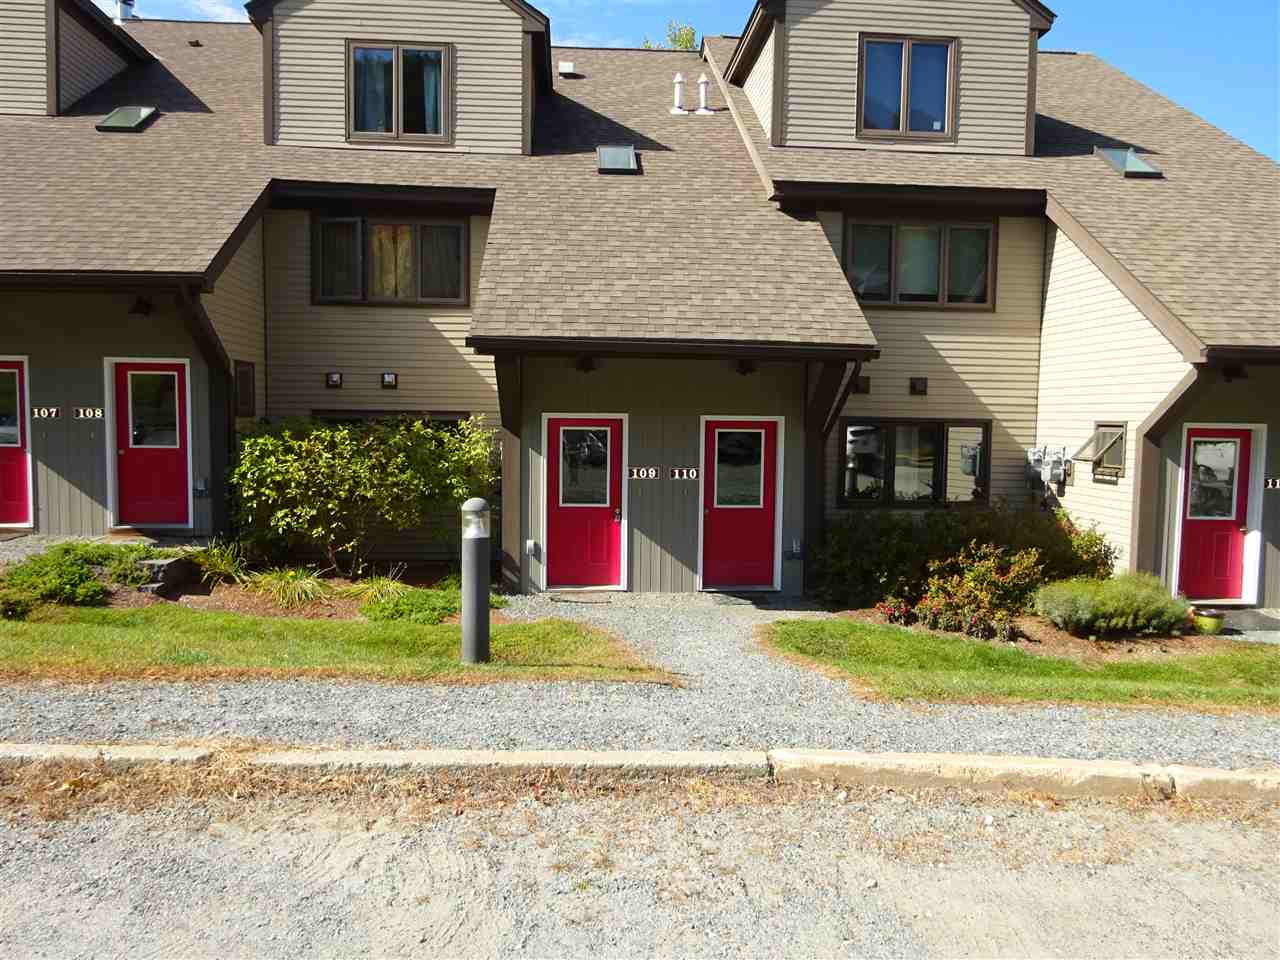 West Windsor VT 05037 Condo for sale $List Price is $135,000